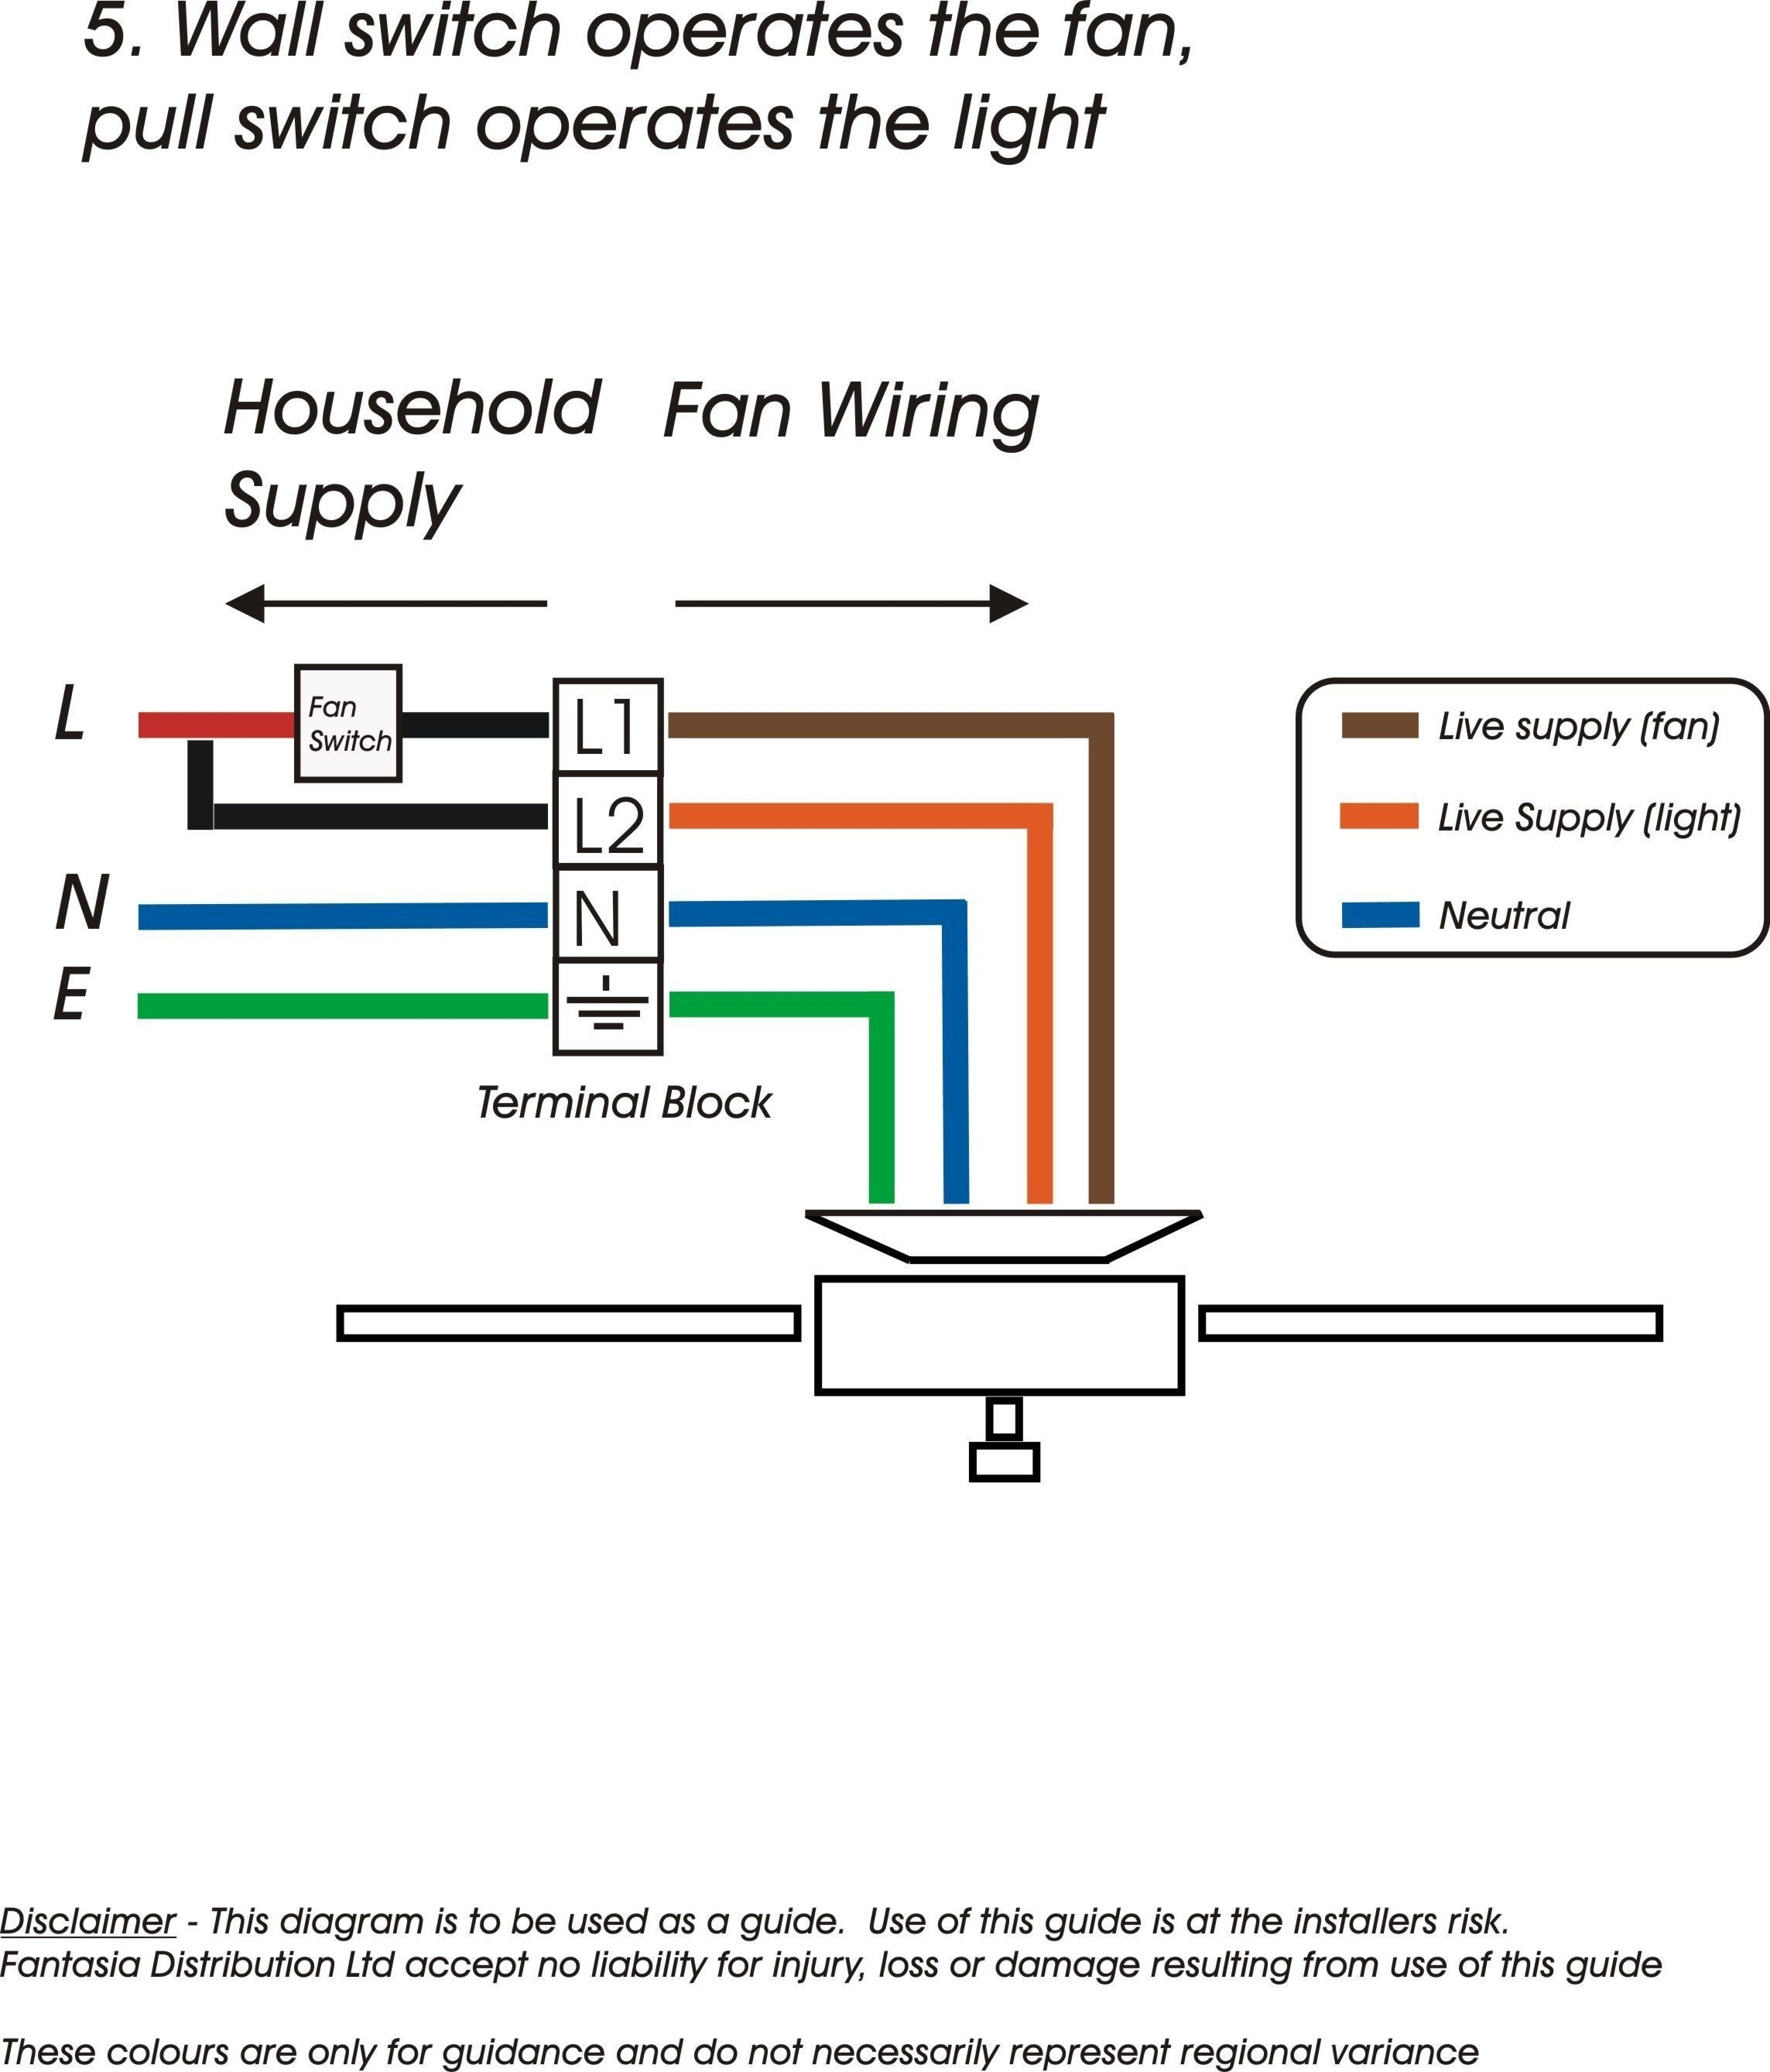 leviton 3 way dimmer switch wiring diagram collection wiring dimmer switch wiring diagram sf-10 leviton 3 way dimmer switch wiring diagram collection leviton 3 way switch wiring diagram best download wiring diagram